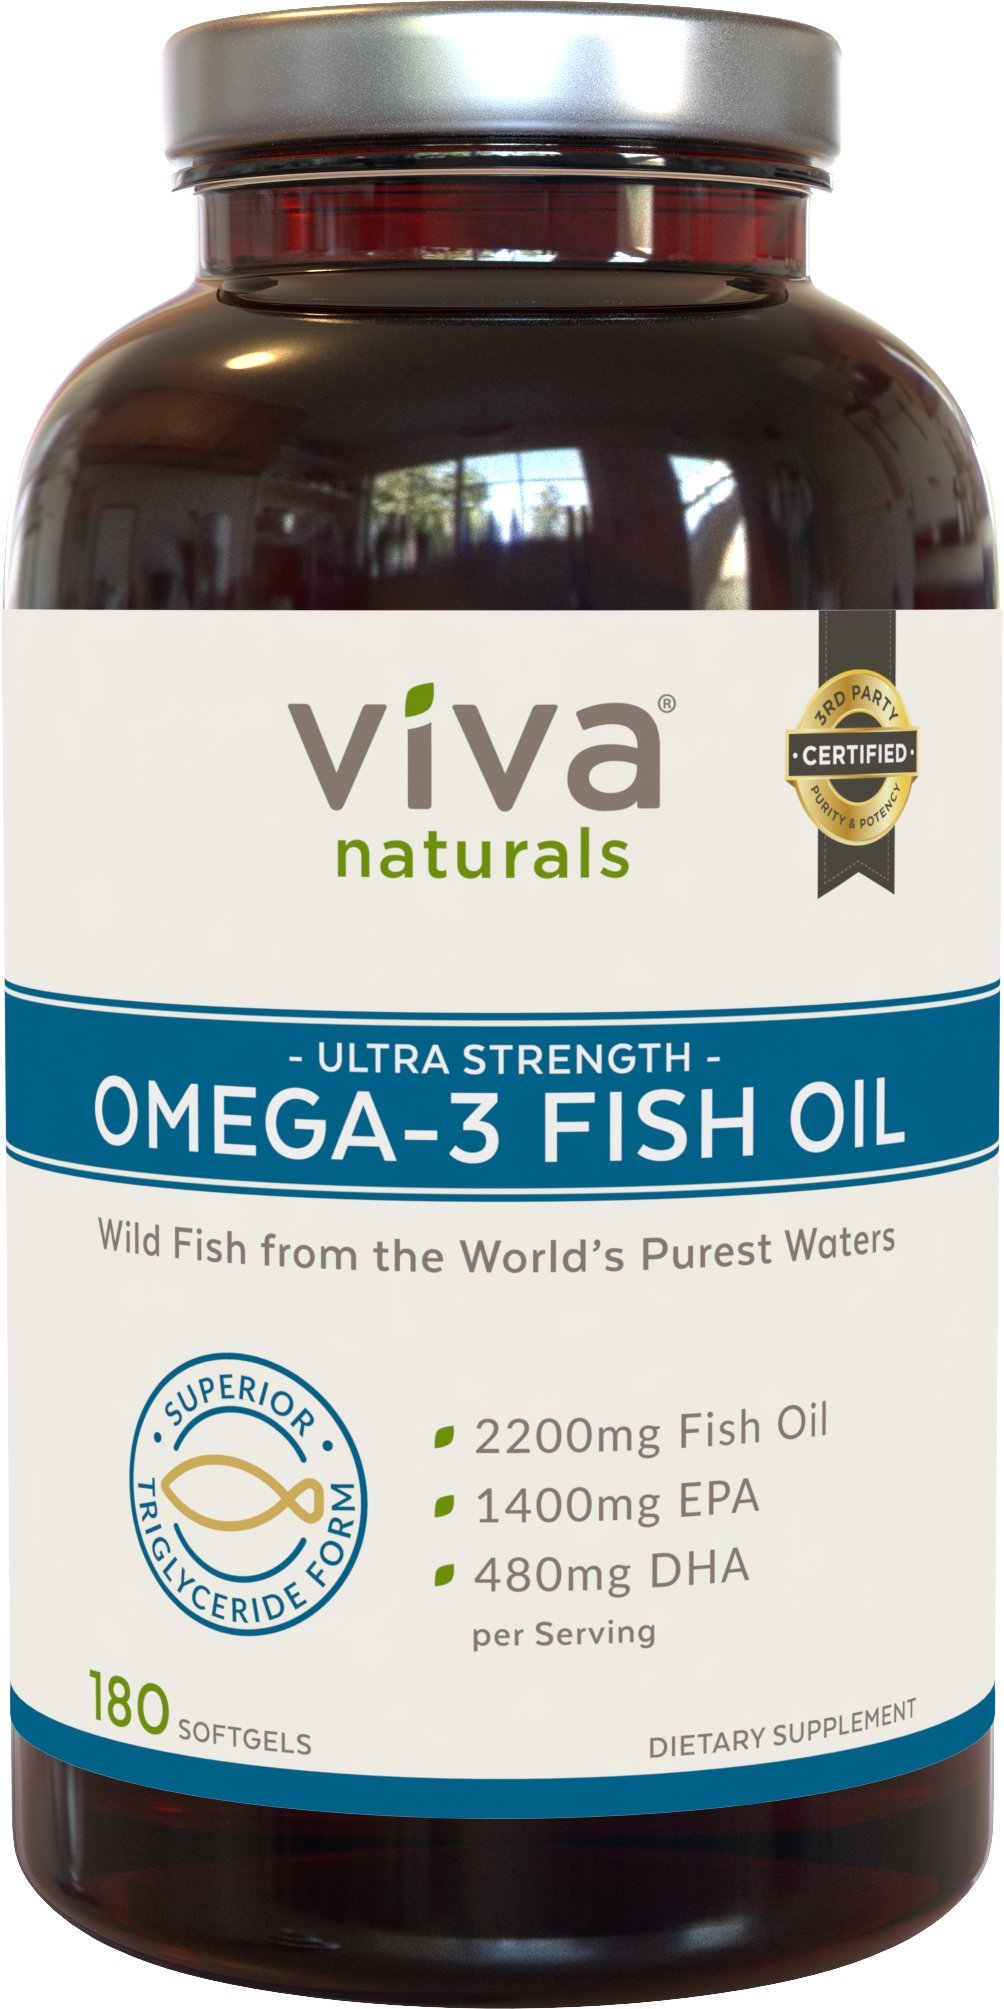 Omega 3 natural fish oil